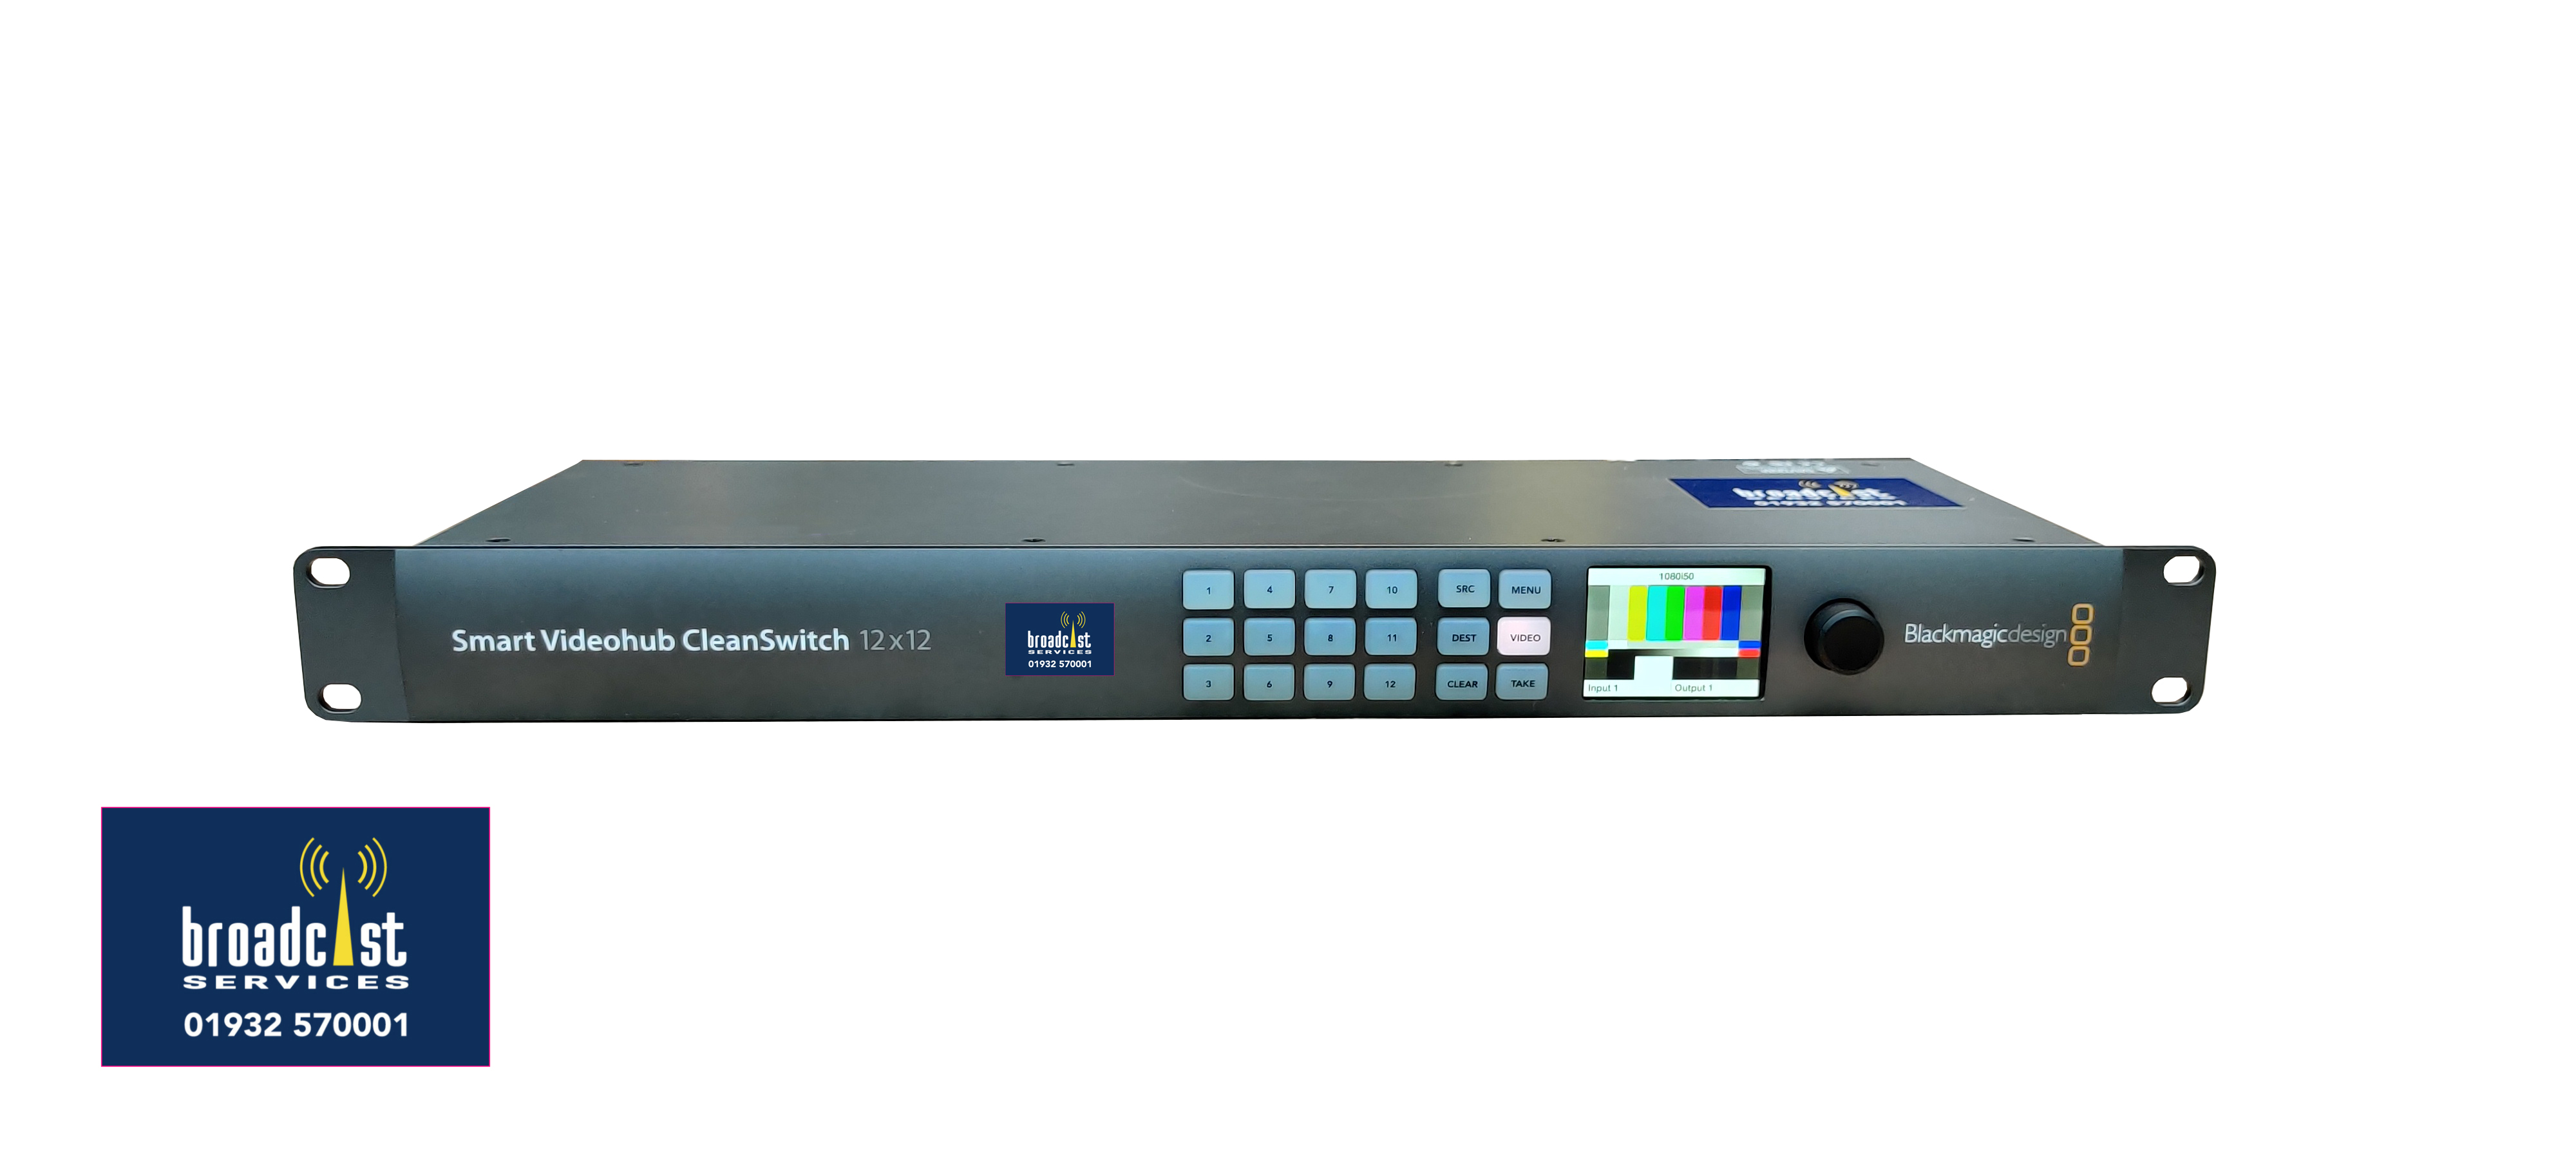 Blackmagic Smart VideoHub Cleanswitch 12 x 12